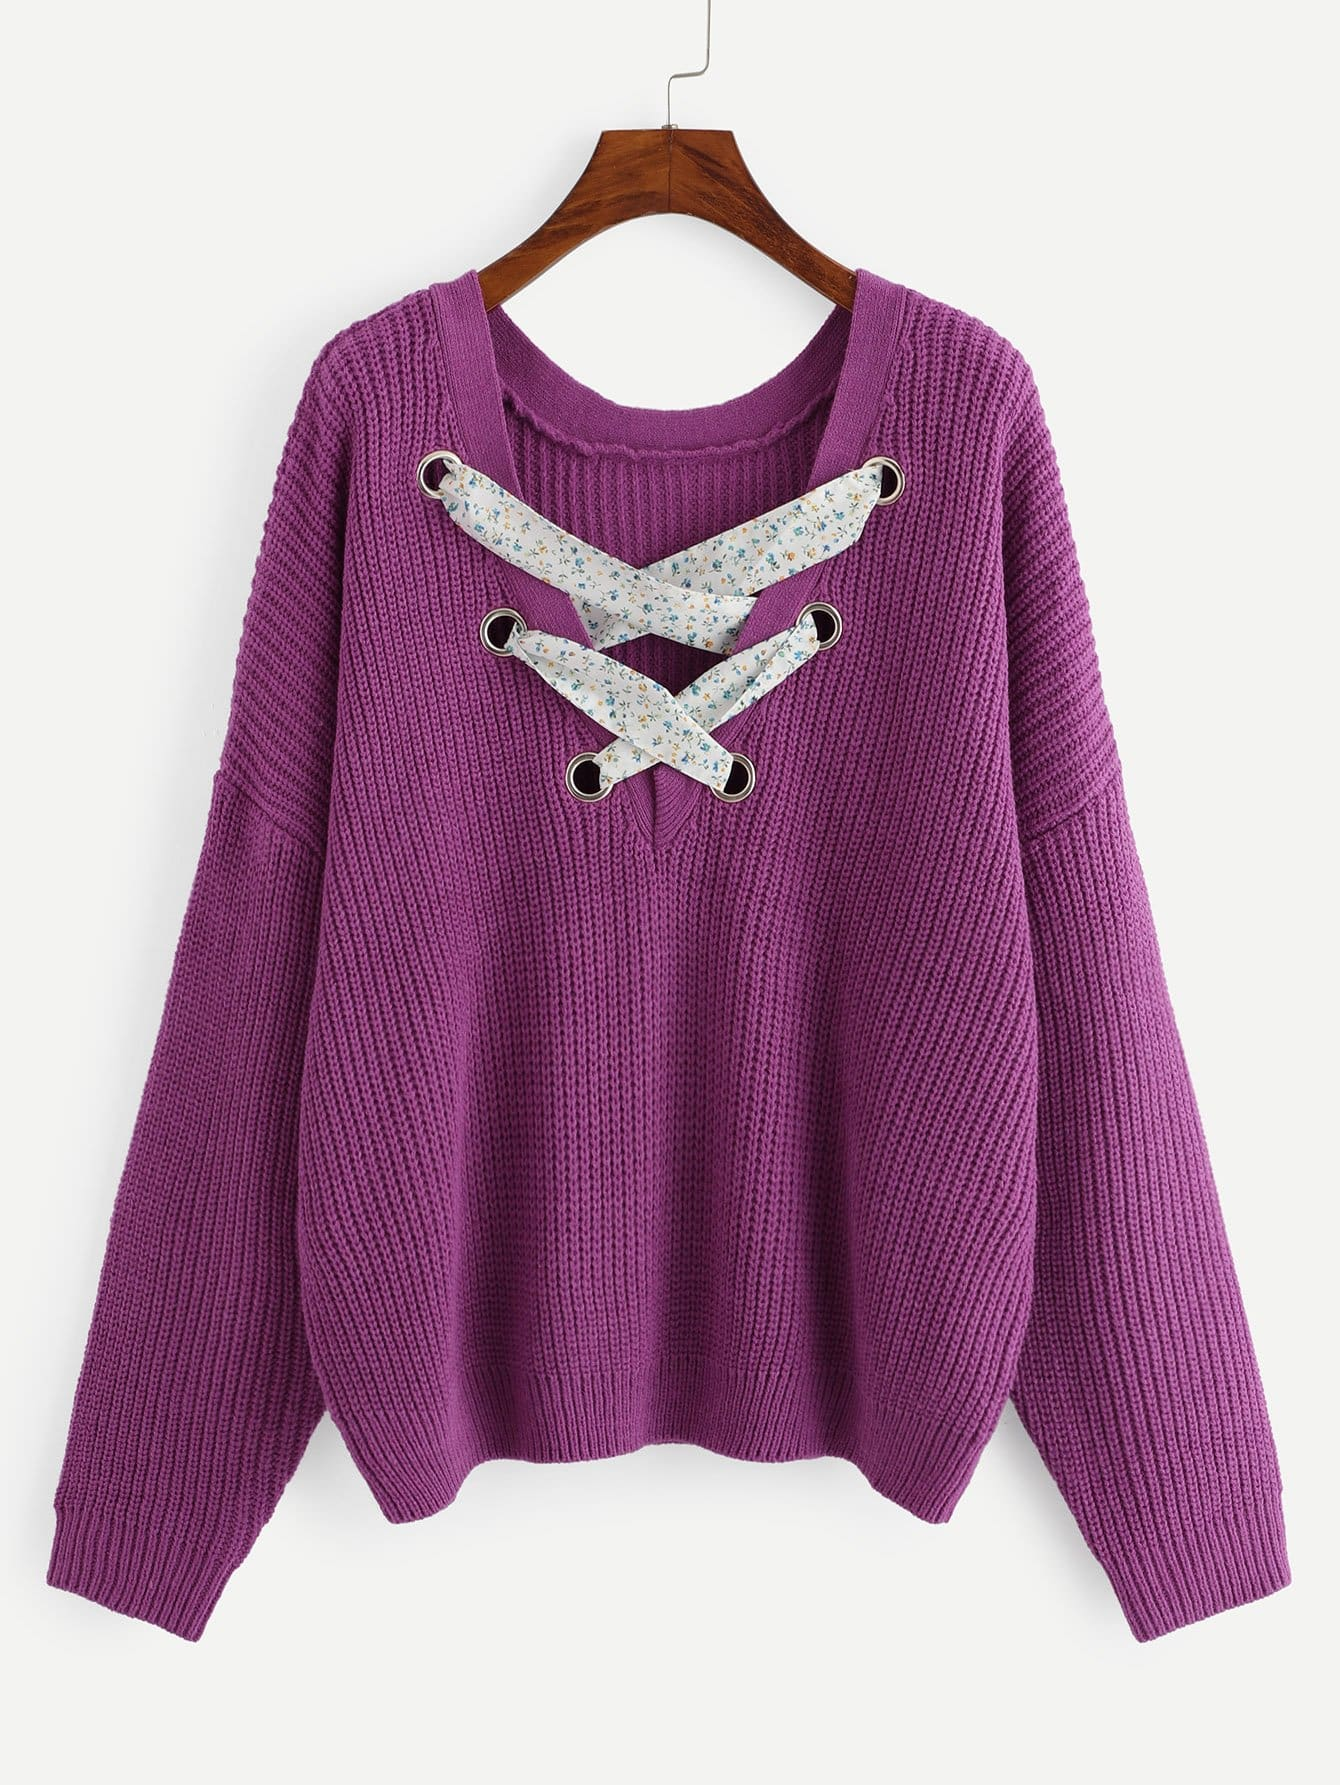 Plus Grommet Crisscross Plunging Neck Jumper fenix чей найди пару